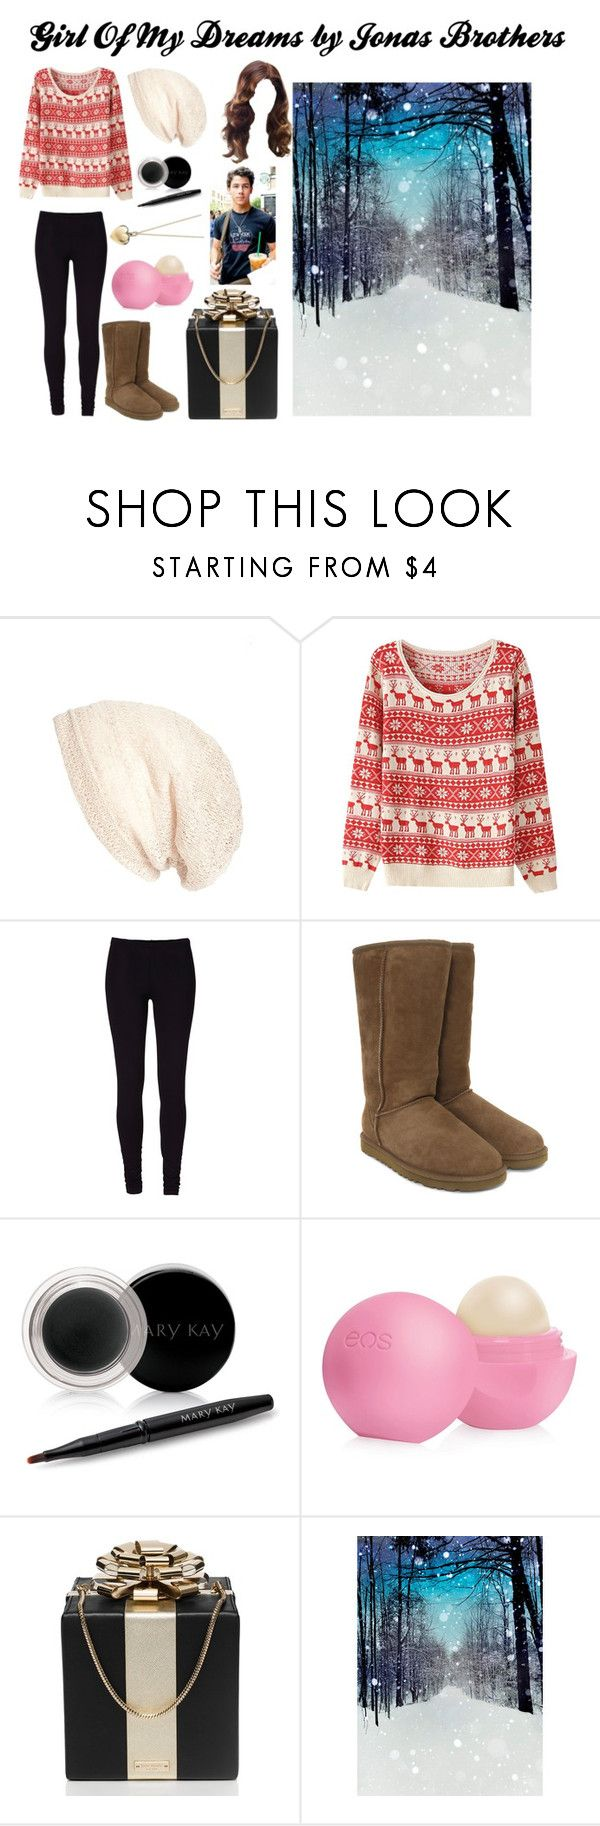 """""""Girl Of My Dreams ~ Jonas Brothers (Part 1)"""" by redheadmahomiemidnightredaustin ❤ liked on Polyvore featuring Cara, UGG Australia, Mary Kay, Eos, Kate Spade, WALL and Tiffany & Co."""